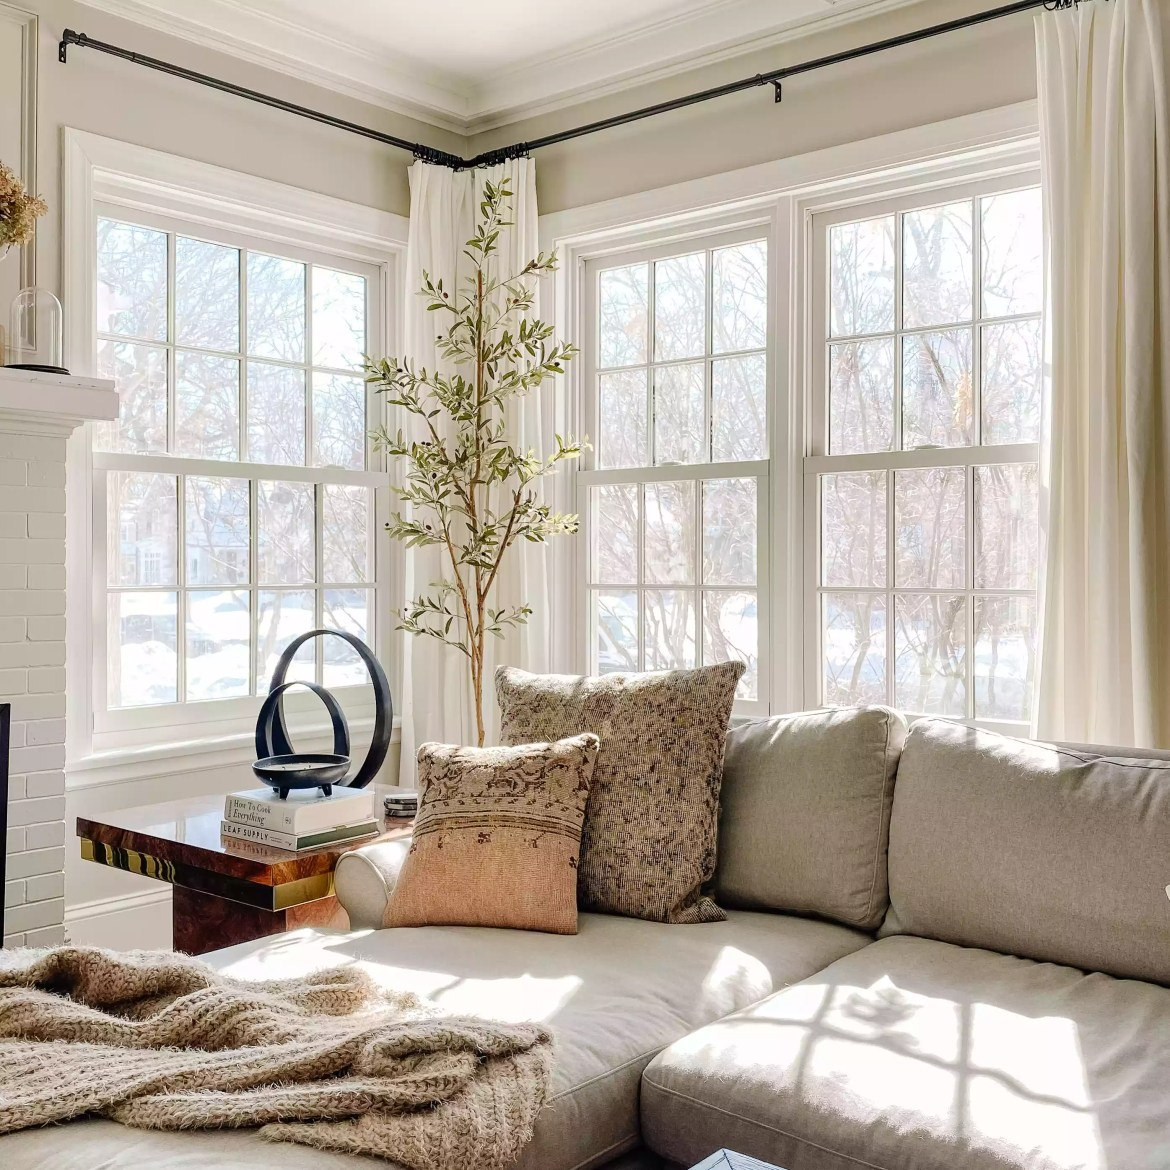 Cozy neutral living room with lots of light.